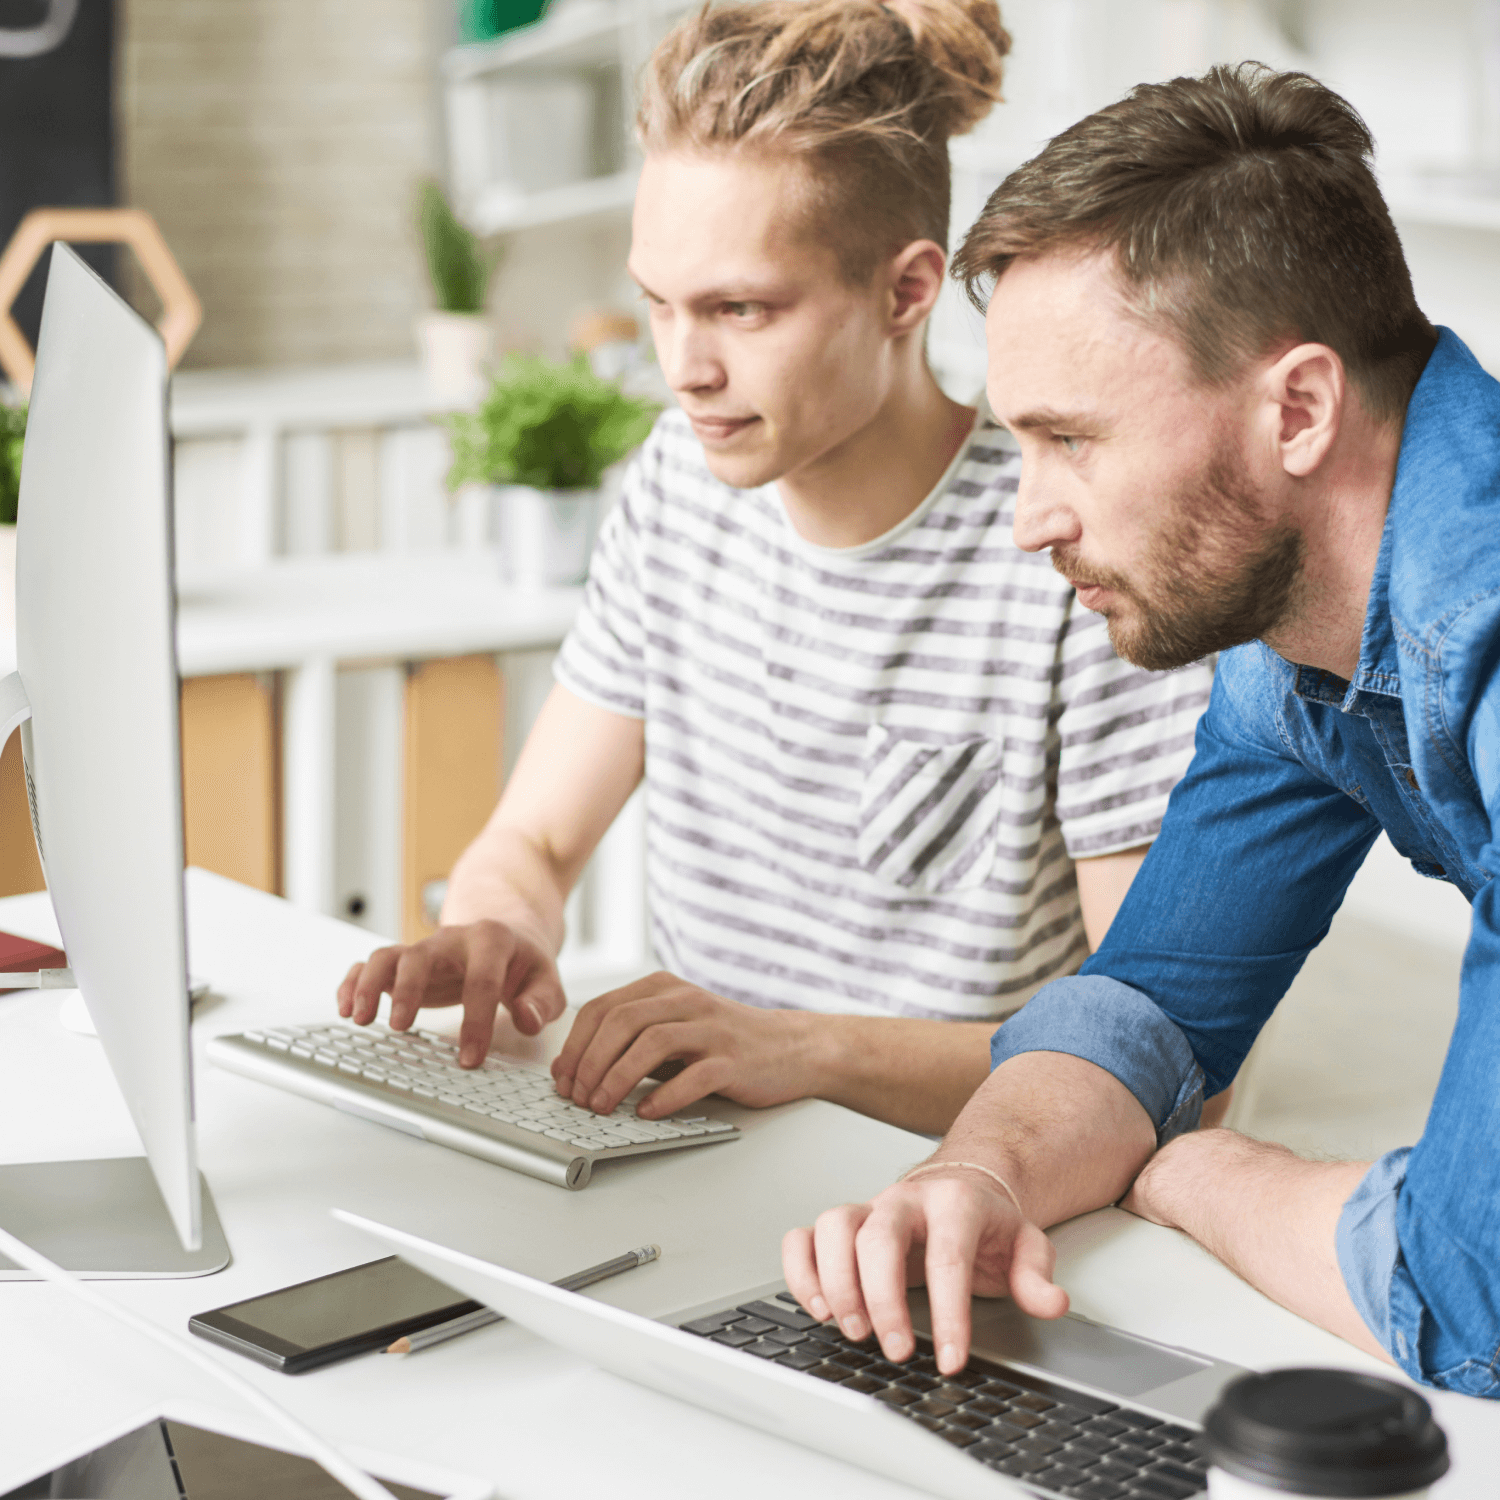 4 Reasons to Invest in Custom Software Development as a Startup